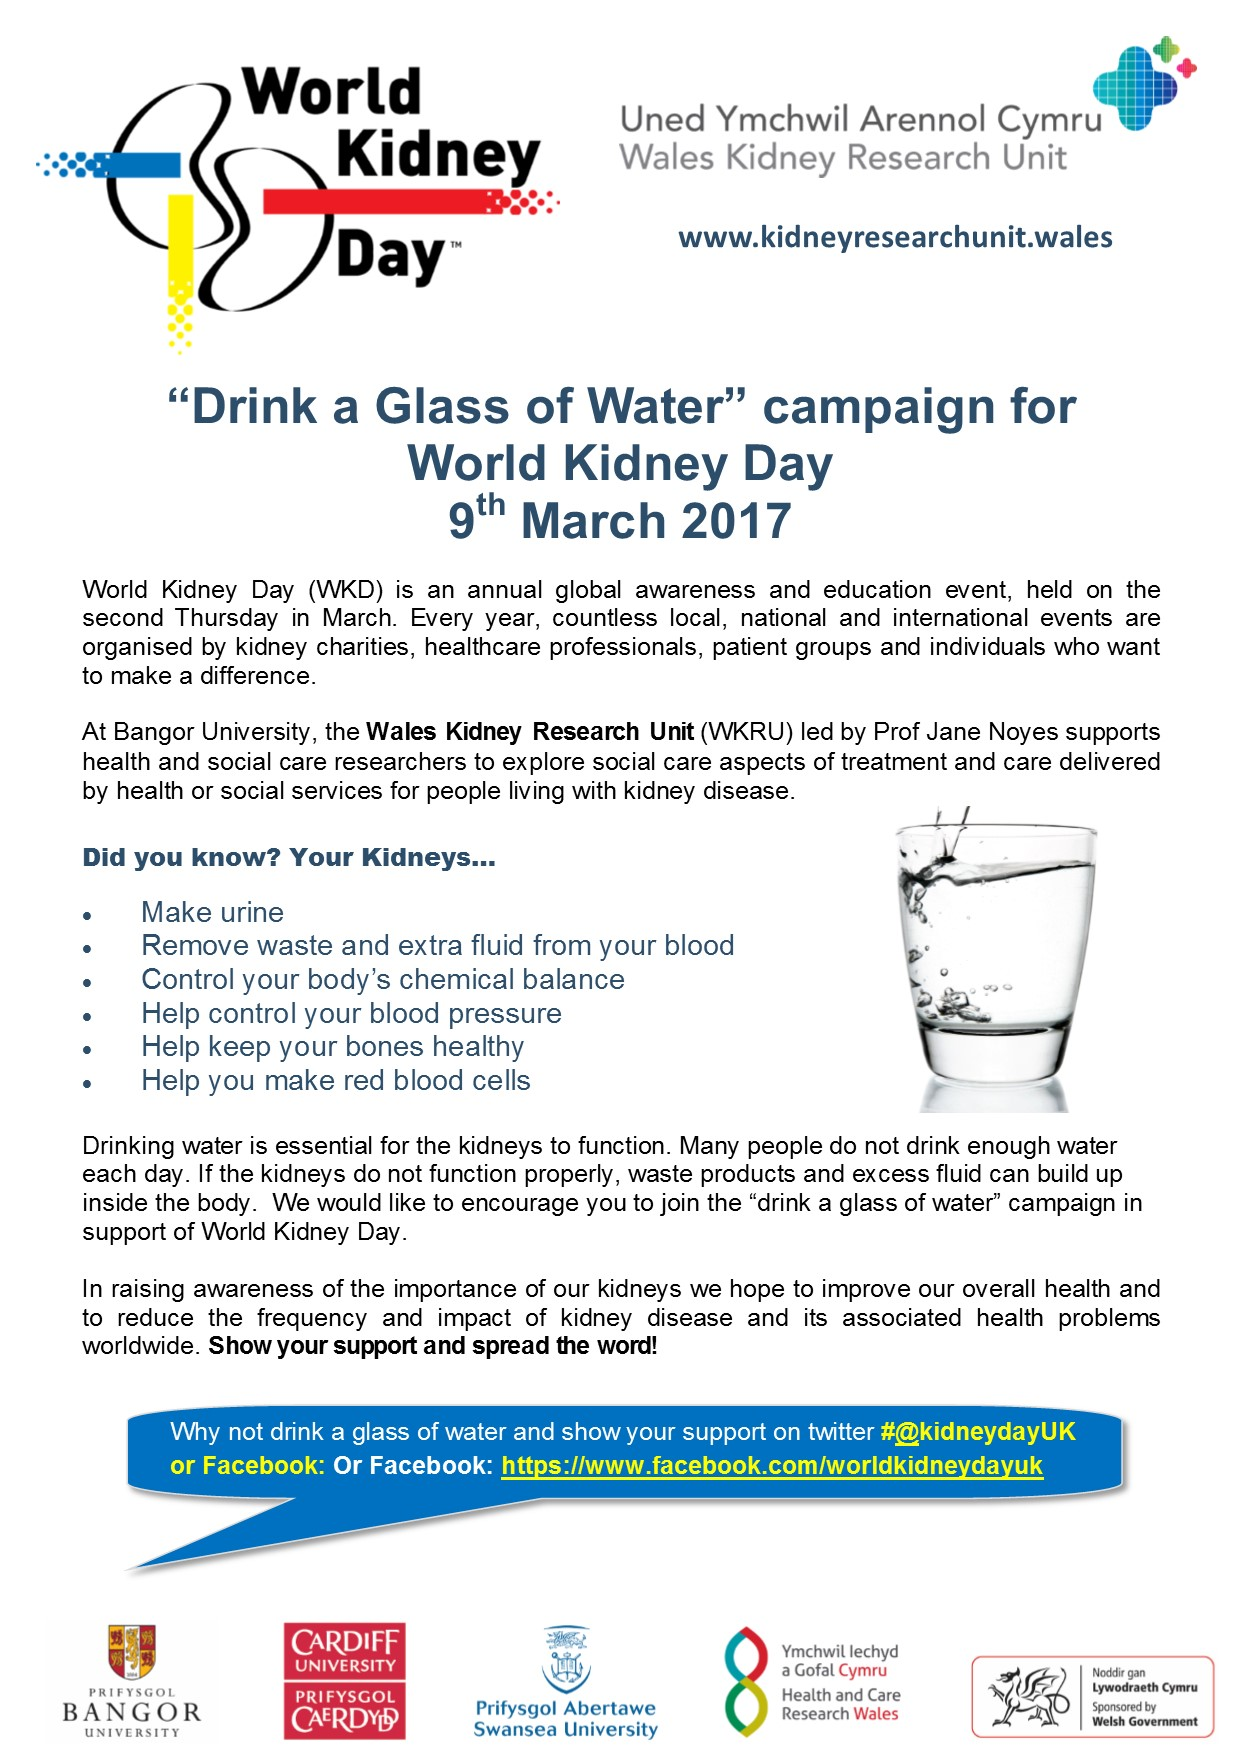 Drink a glass of water campaign